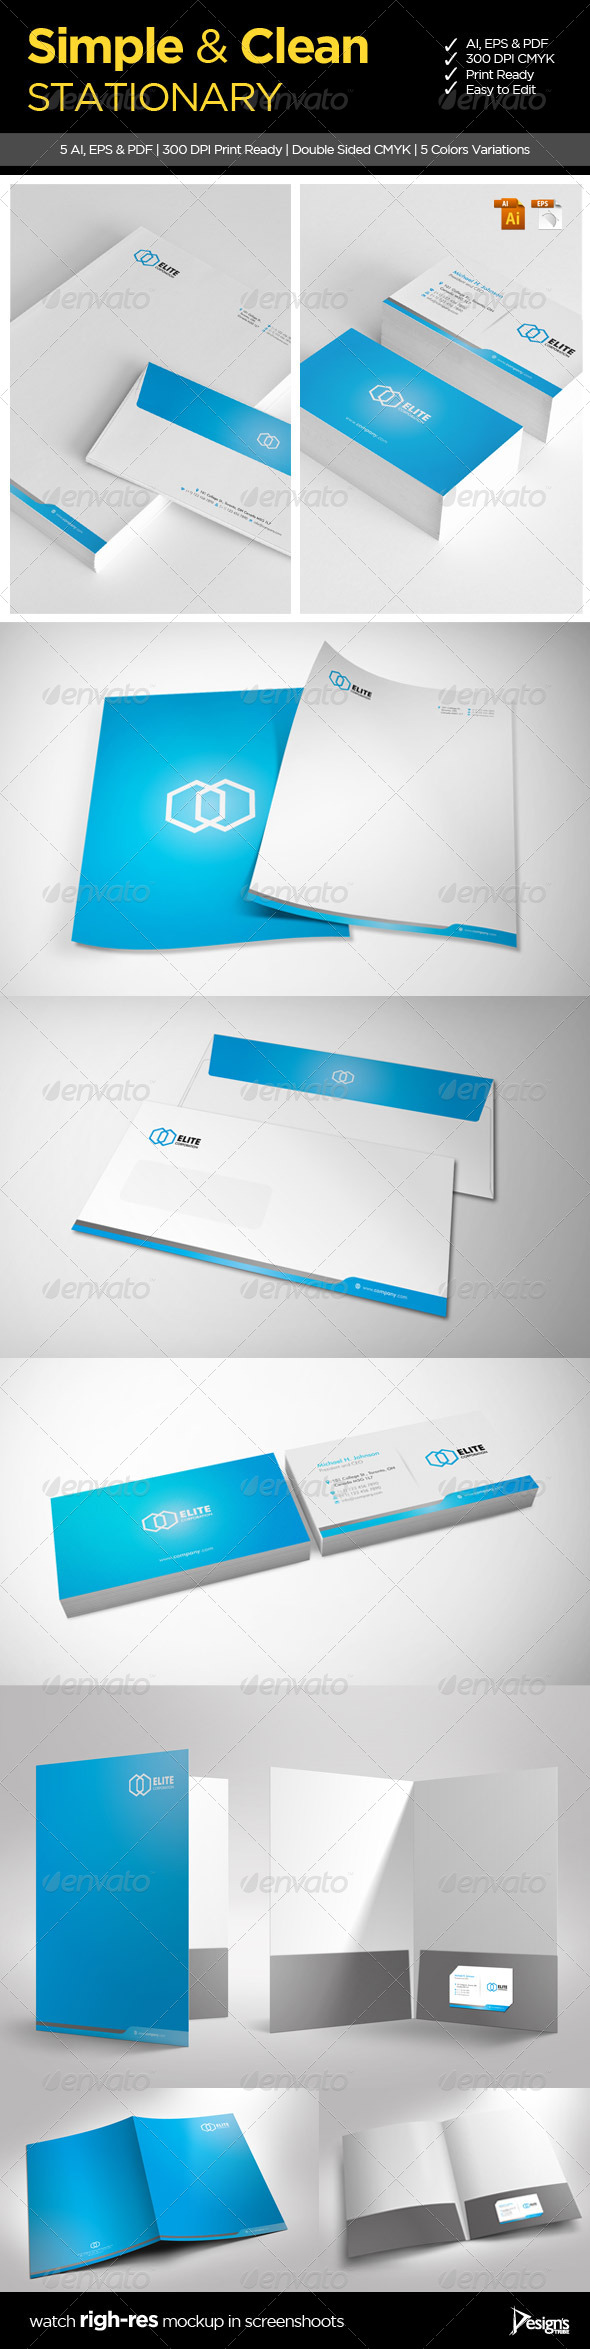 Simple and Clean Stationary 1 - Stationery Print Templates